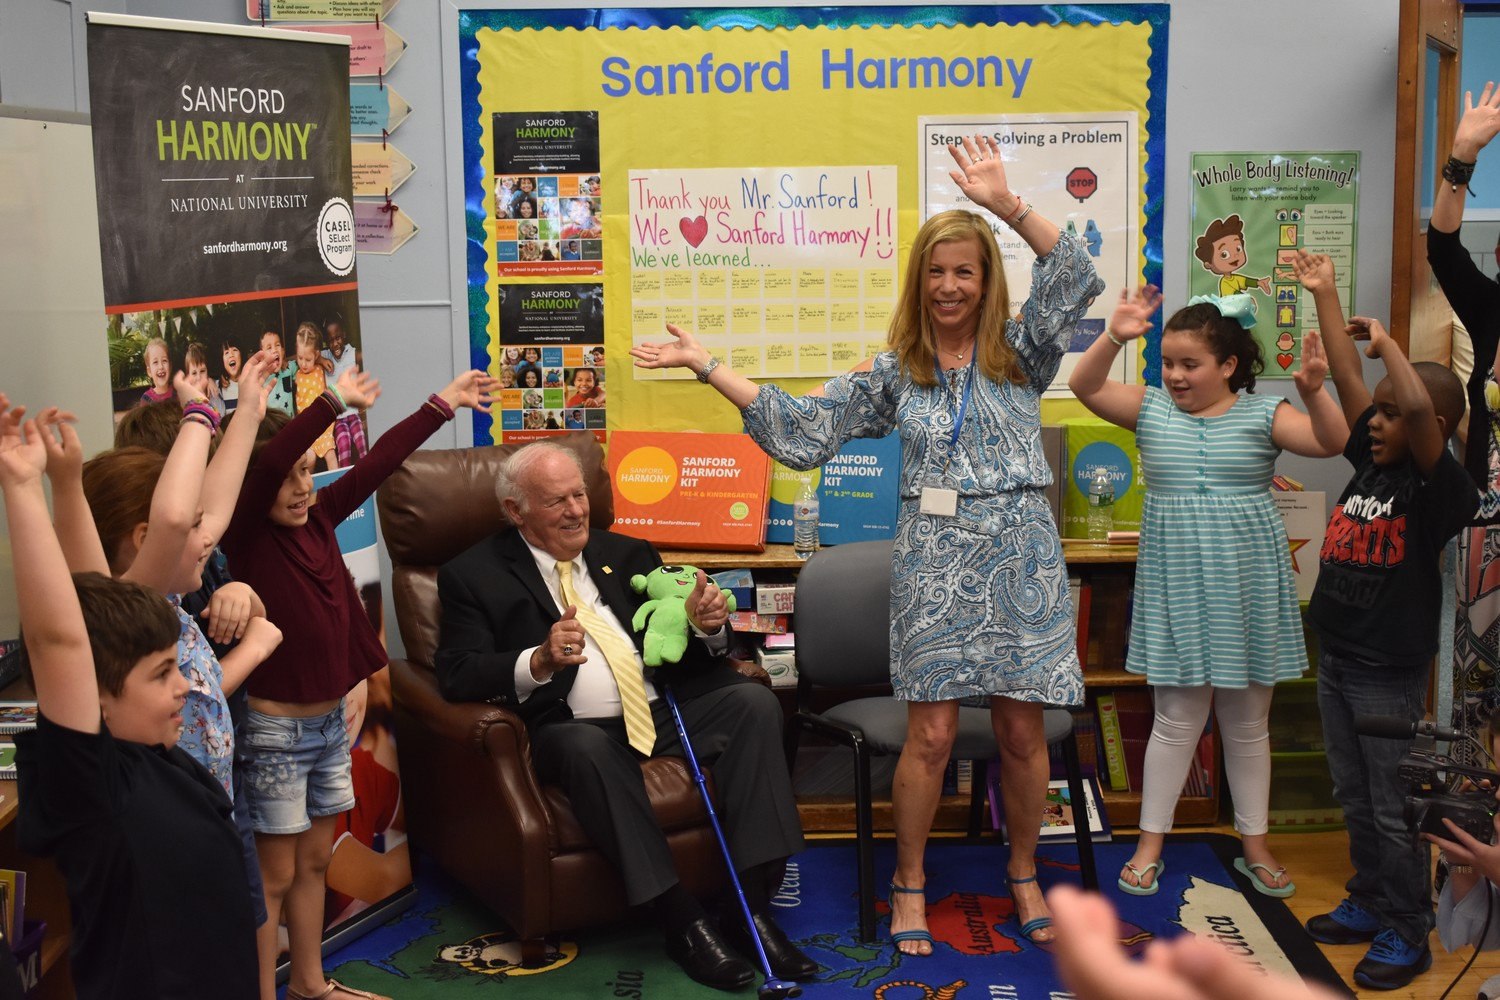 Meryl Goodman danced with her second-grade students at William S. Covert Elementary School on June 6. The lesson was part of Sanford Harmony, a social and emotional learning program inspired by billionaire philanthropist Thomas Denny Sanford, who watched.